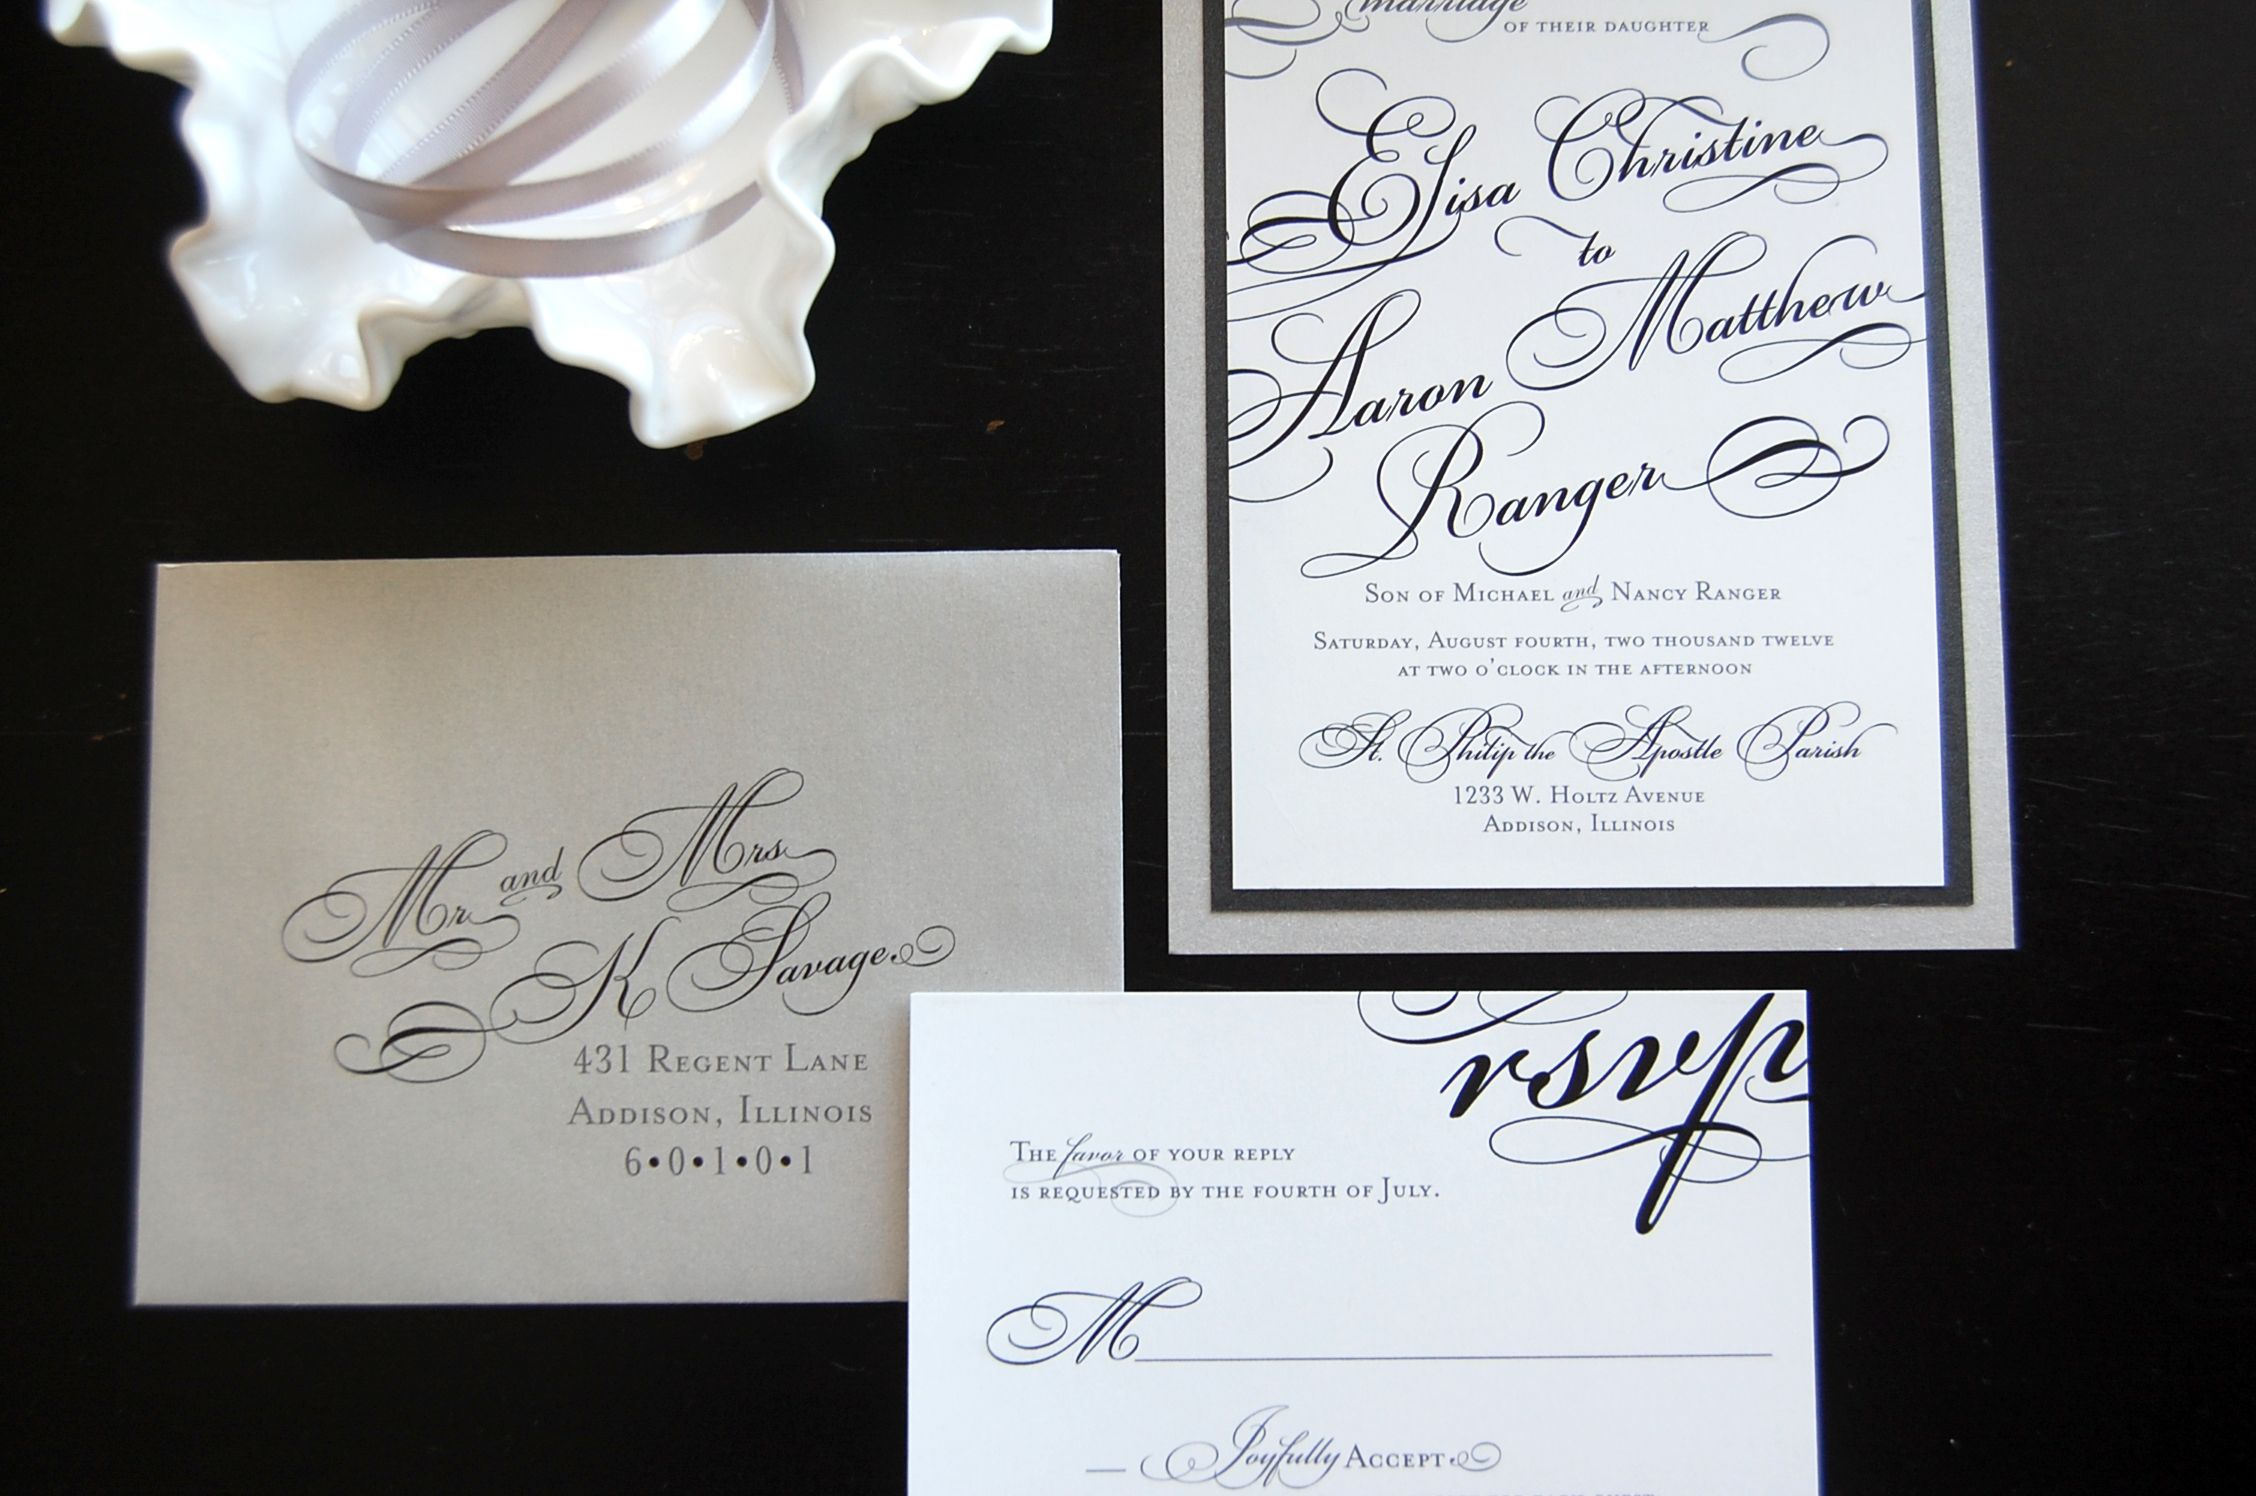 silver and black formal wedding invitation with lovely